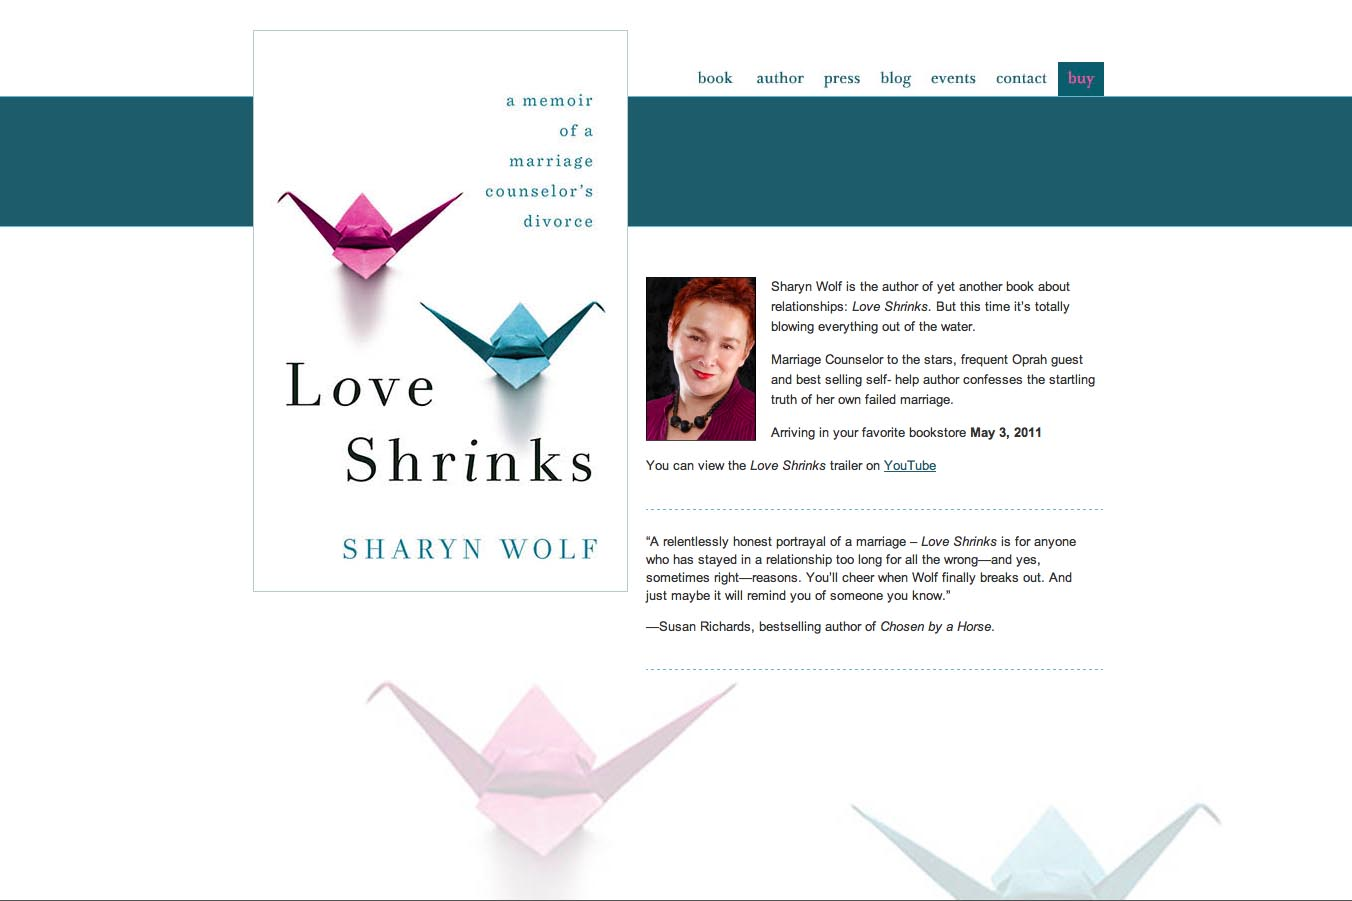 web design for a book by a relationships therapist - Sharyn Wolf